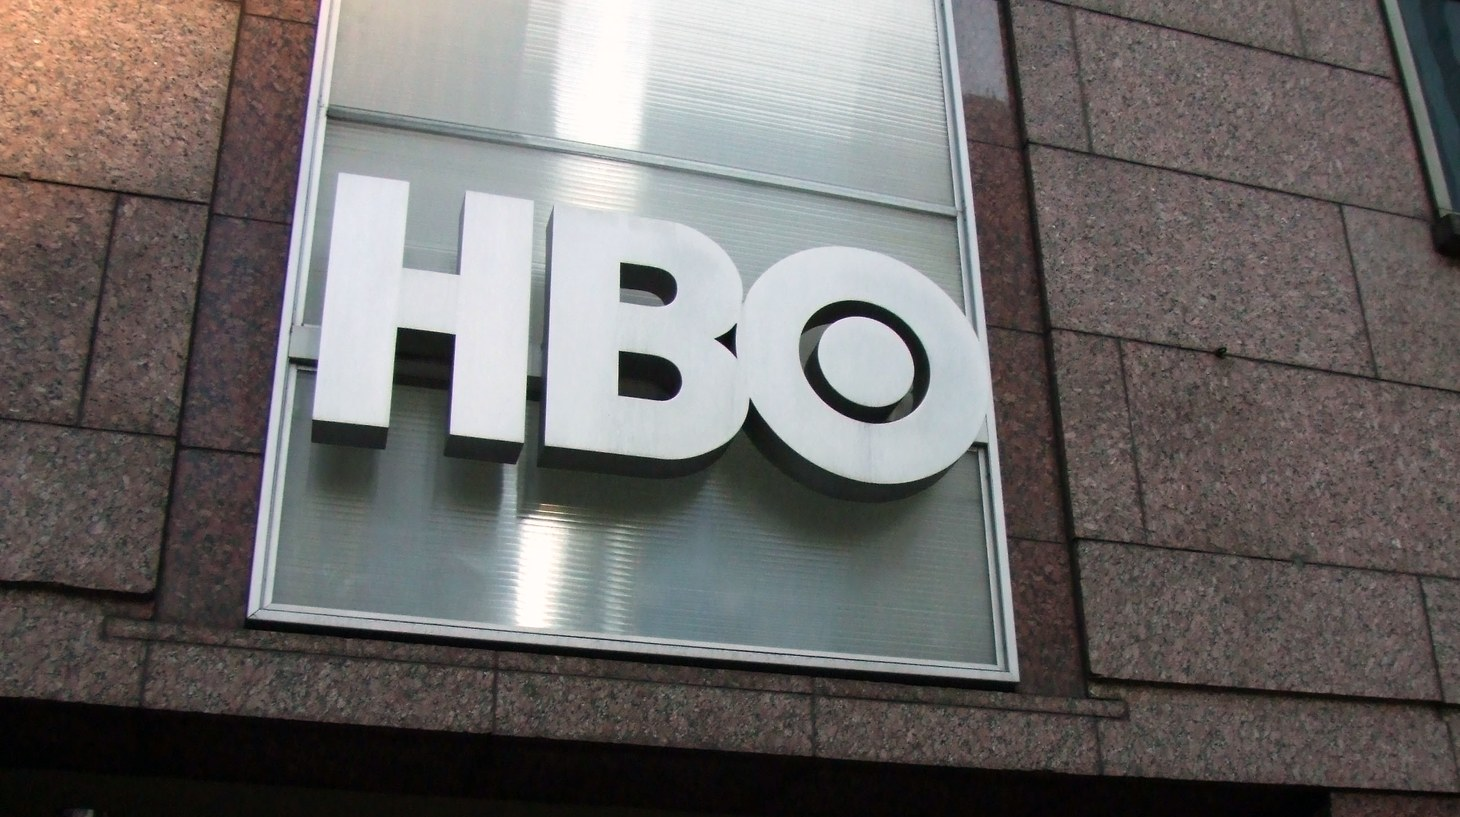 Only 4.1 million of HBO's 26 million subscribers have tried the HBO Max service, which is free to all subscribers.